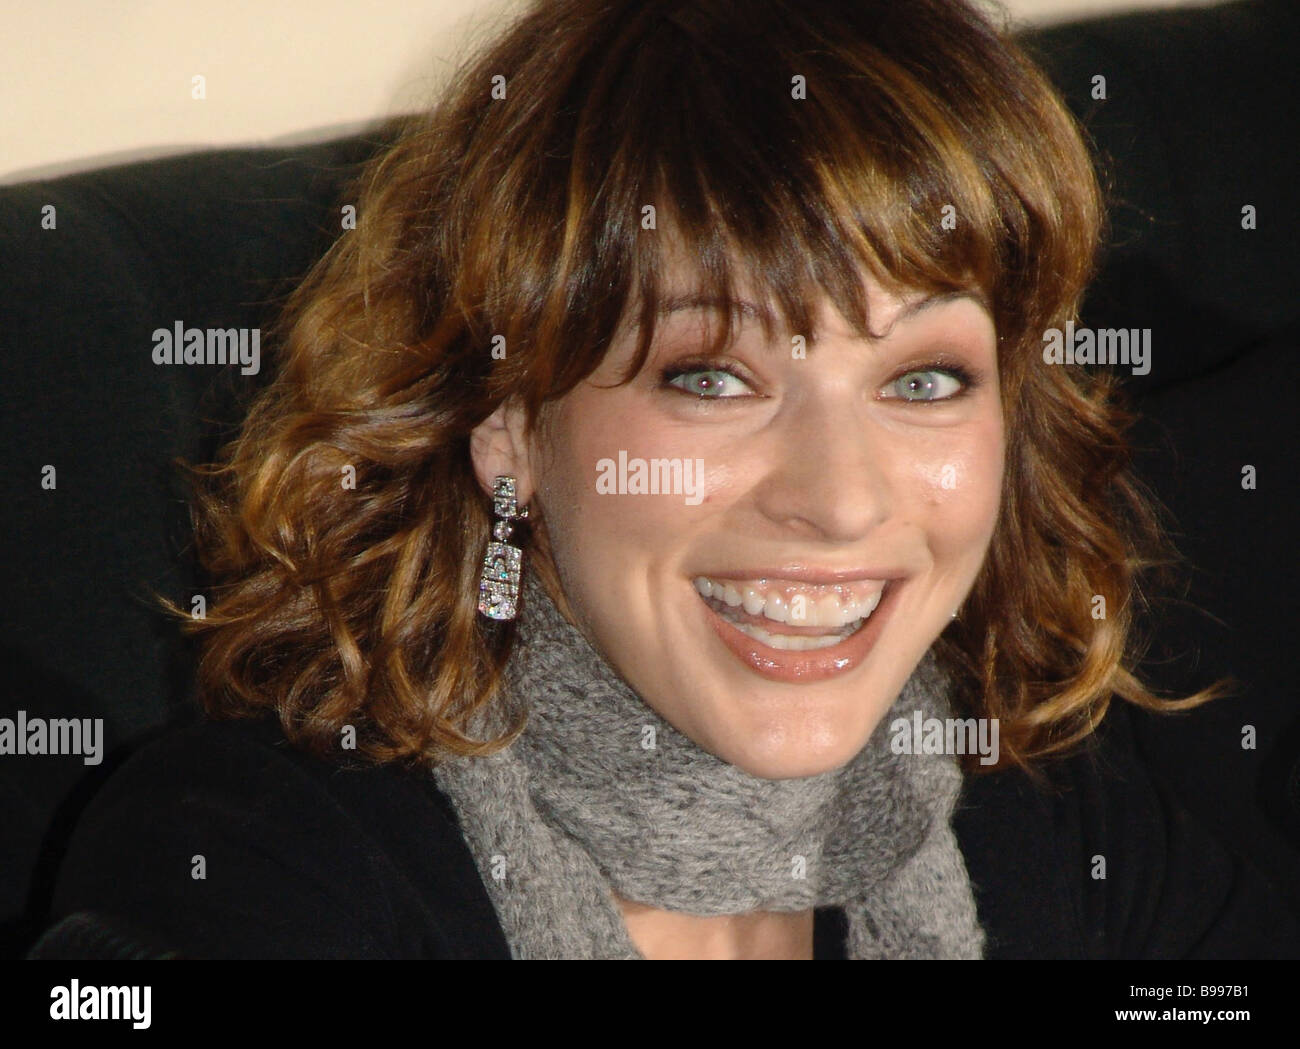 Mila Jovovich Hollywood actress and model during a news conference in a Moscow Vouge cafe - Stock Image